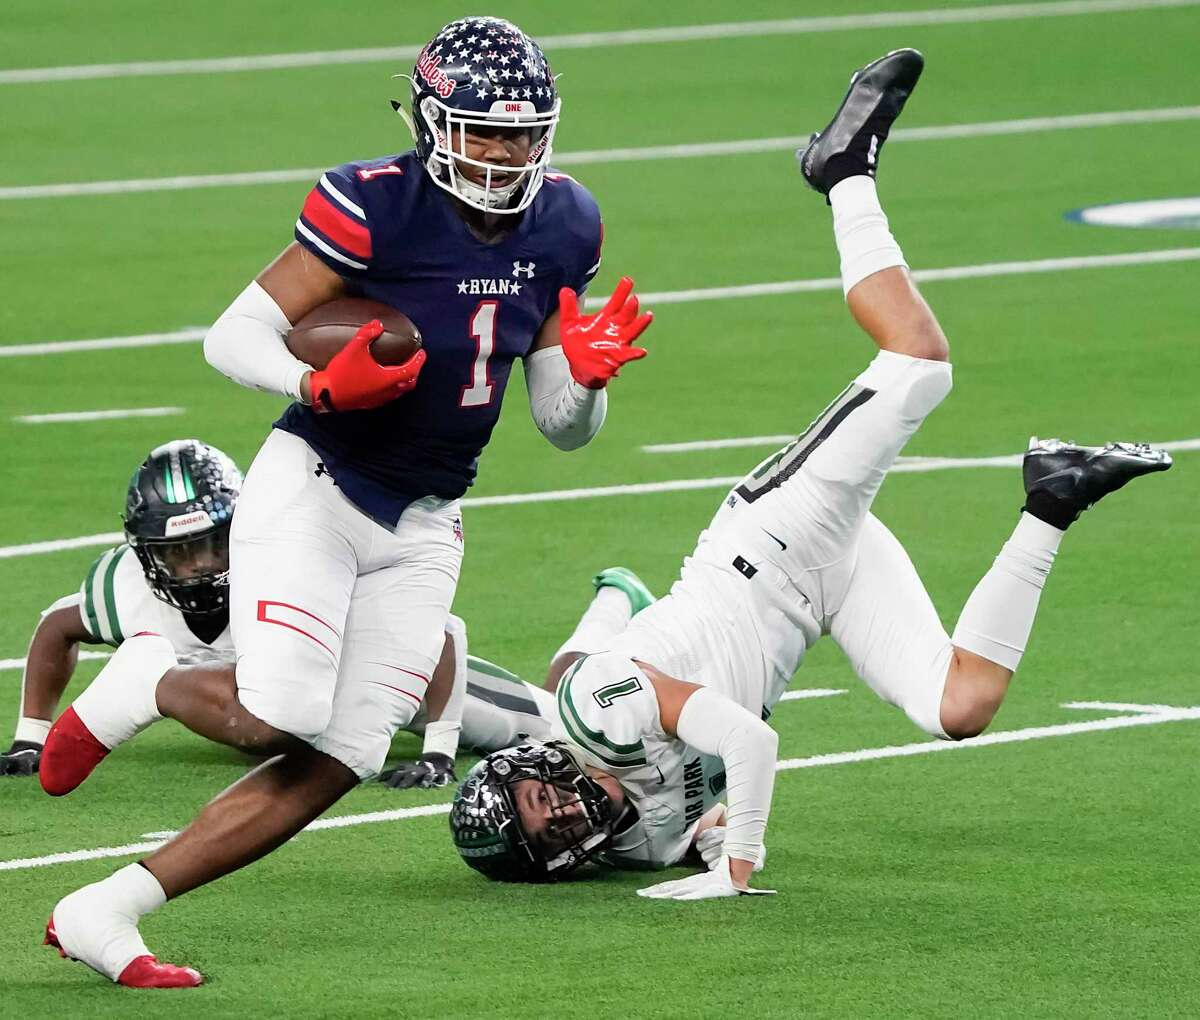 Denton Ryan wide receiver Ja'Tavion Sanders (1) gets past Cedar Park defensive back Cody Marshall during the first half of the Class 5A Division I Texas state football championship game at AT&T Stadium on Friday, Jan. 15, 2021, in Arlington, Texas. (Smiley N. Pool/The Dallas Morning News)